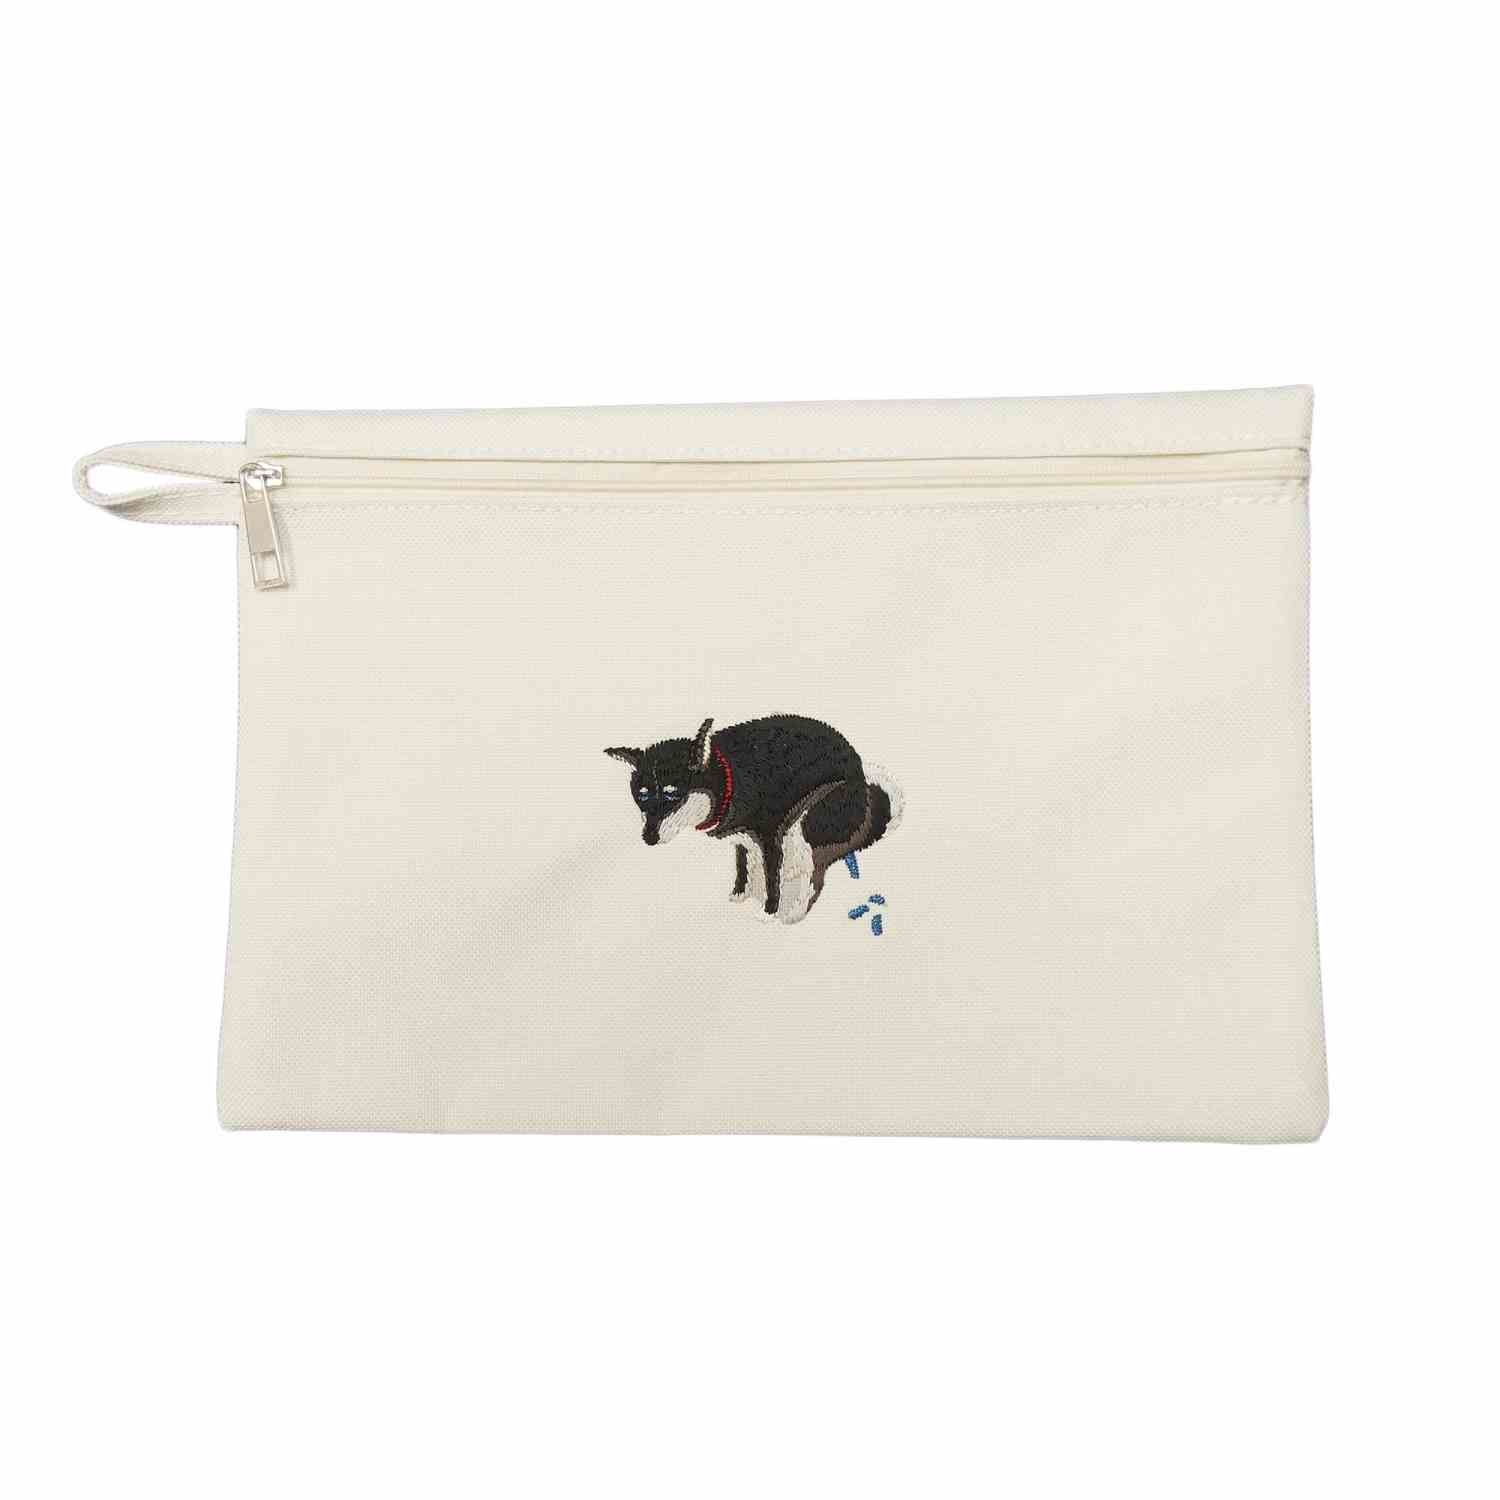 SHIBA-INU POOPING POUCH - 黒柴